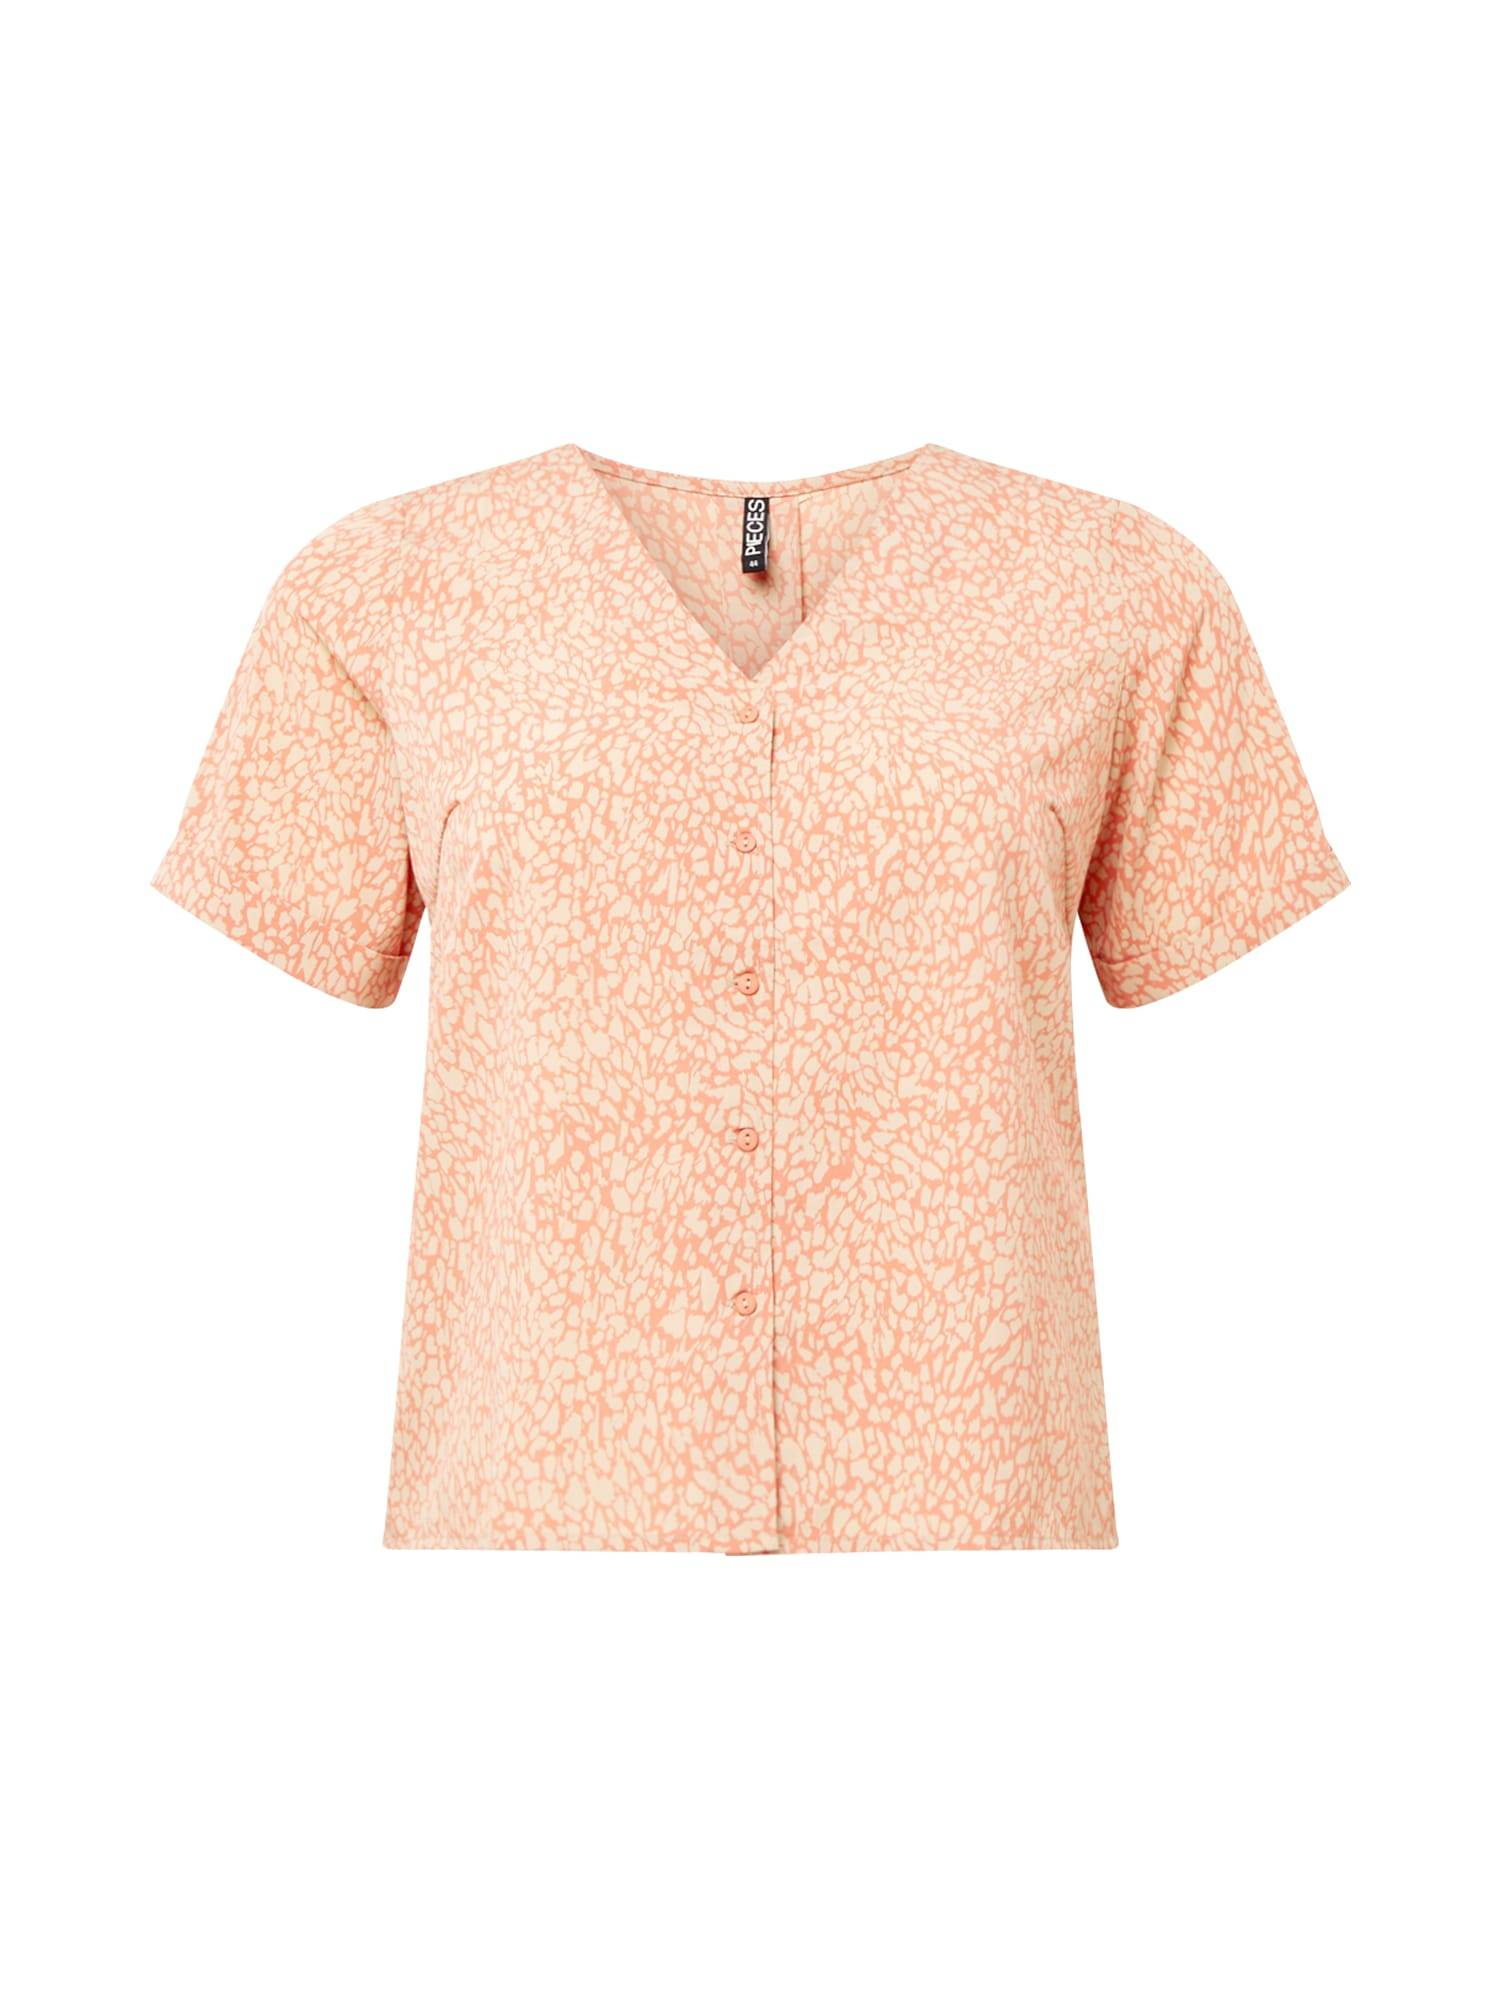 PIECES (Curve) Chemisier 'GILBERTA'  - Orange - Taille: 50 - female